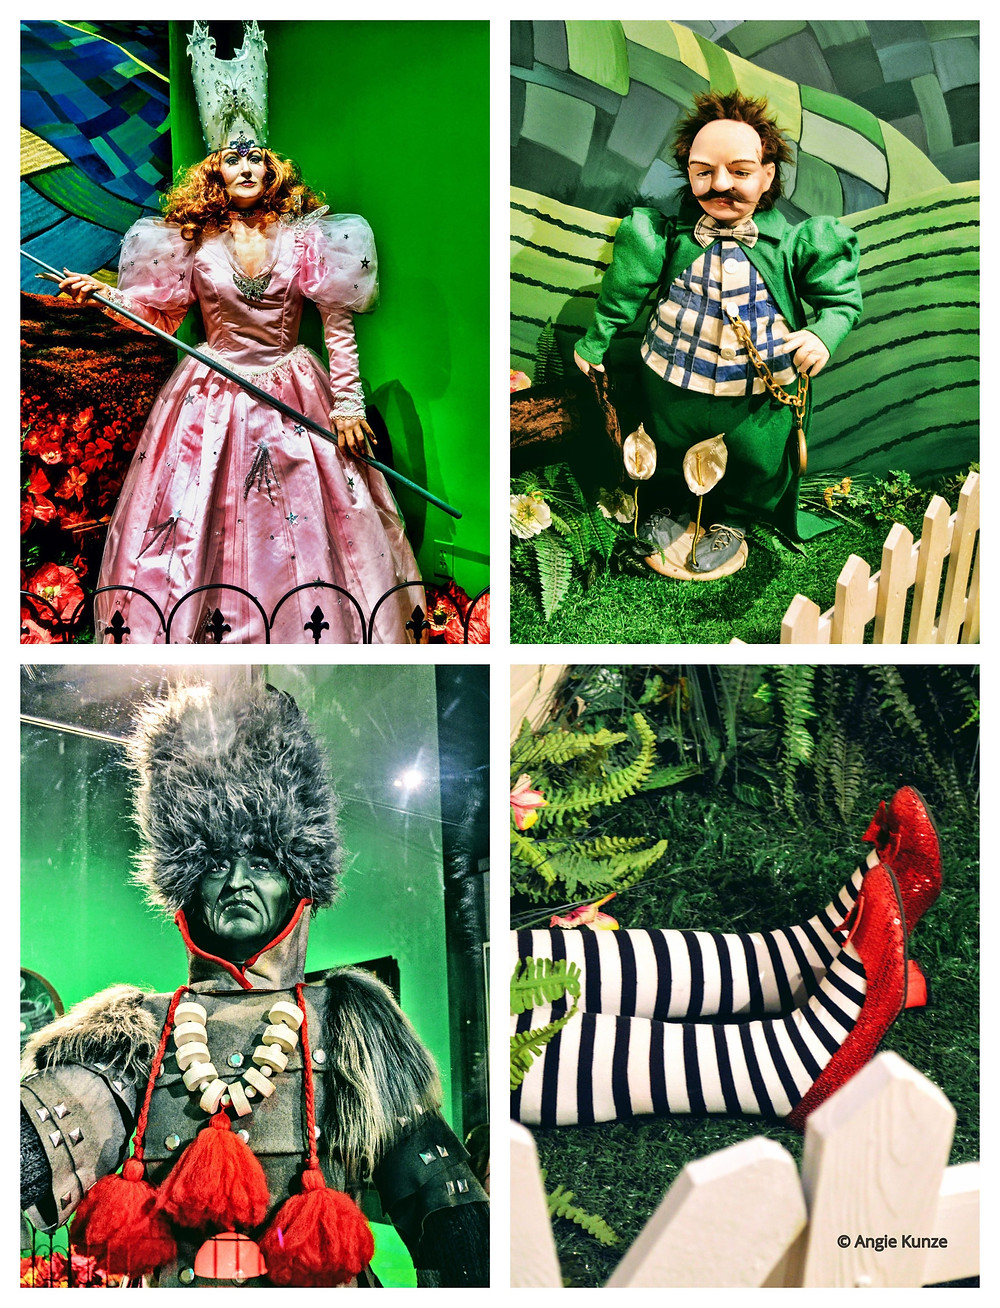 Characters from the Wizard of Oz at the Oz Museum in Wamego Kansas Glinda the Good Witch, Munchkin Mayor, Winkie Guard, What's left of the Wicked Witch of the West